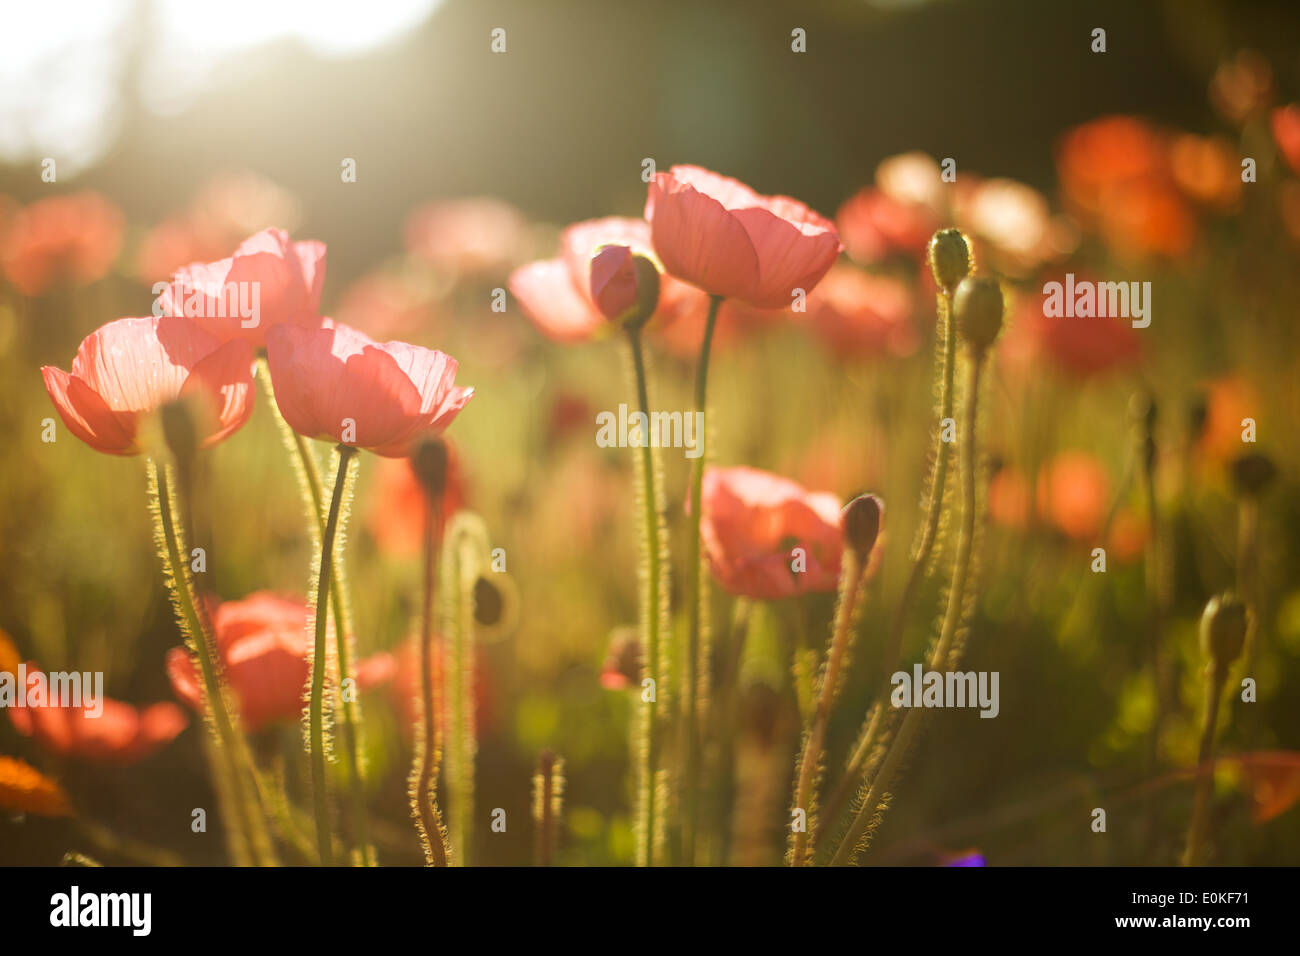 Red poppies grow in a field bathed in afternoon light. - Stock Image